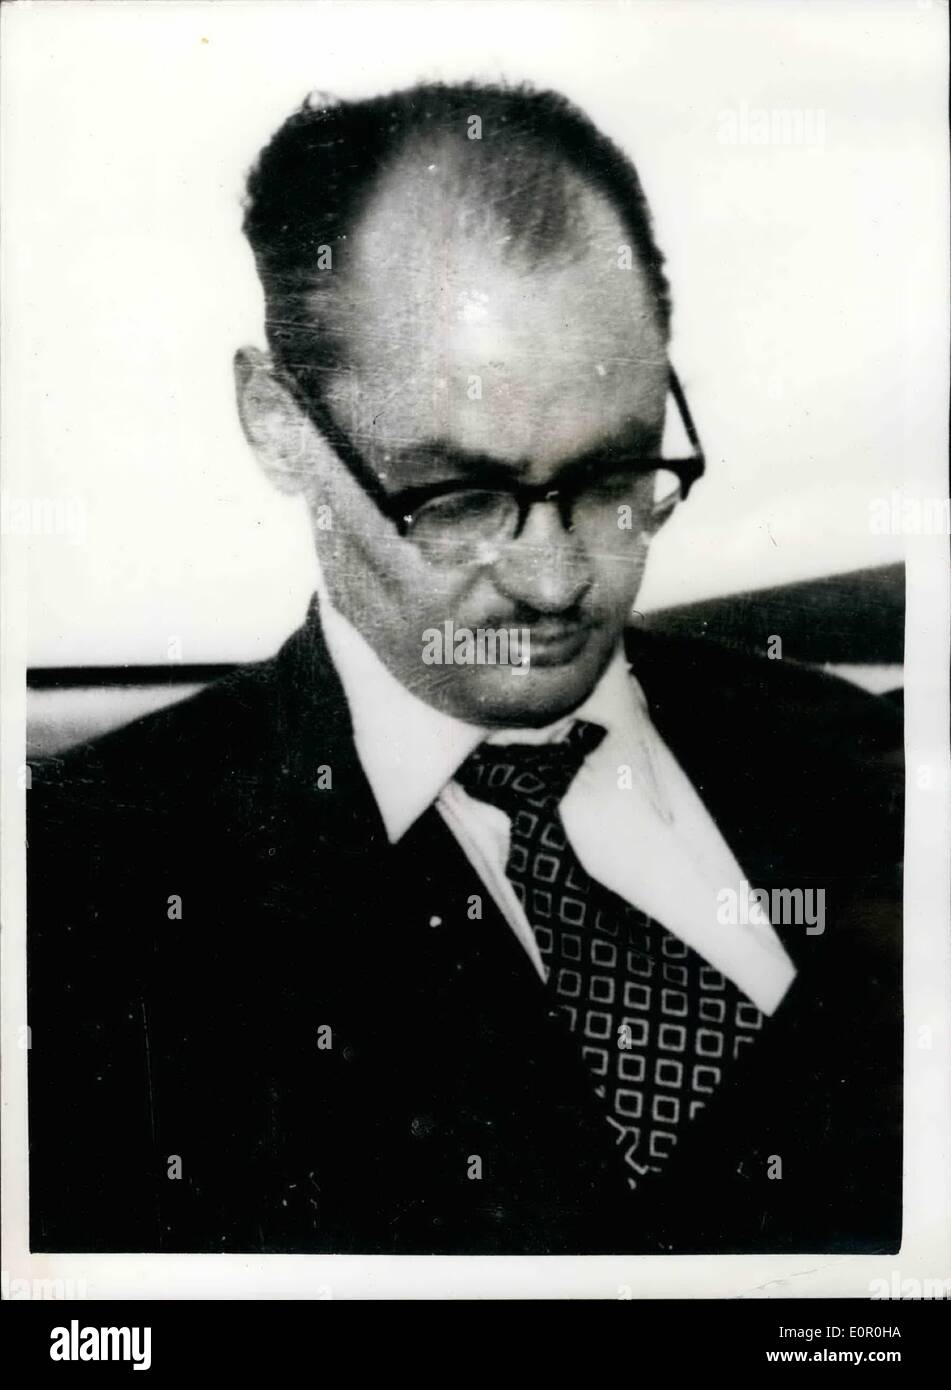 Jun. 06, 1957 - Alfred George Hinds makes escape from the law courts ans is recaptured at Bristol.: Alfred George Hinds made a dramatic escape from his escort at the London Law Courts this morning. He and an accomplice locked two warders in a lavatory and ran out into the street. It was announced that he was caught later this afternoon at Lulsgate aerodrome on the outskirts of Bristol - as he was about to board an aircraft for Dublin - Stock Image